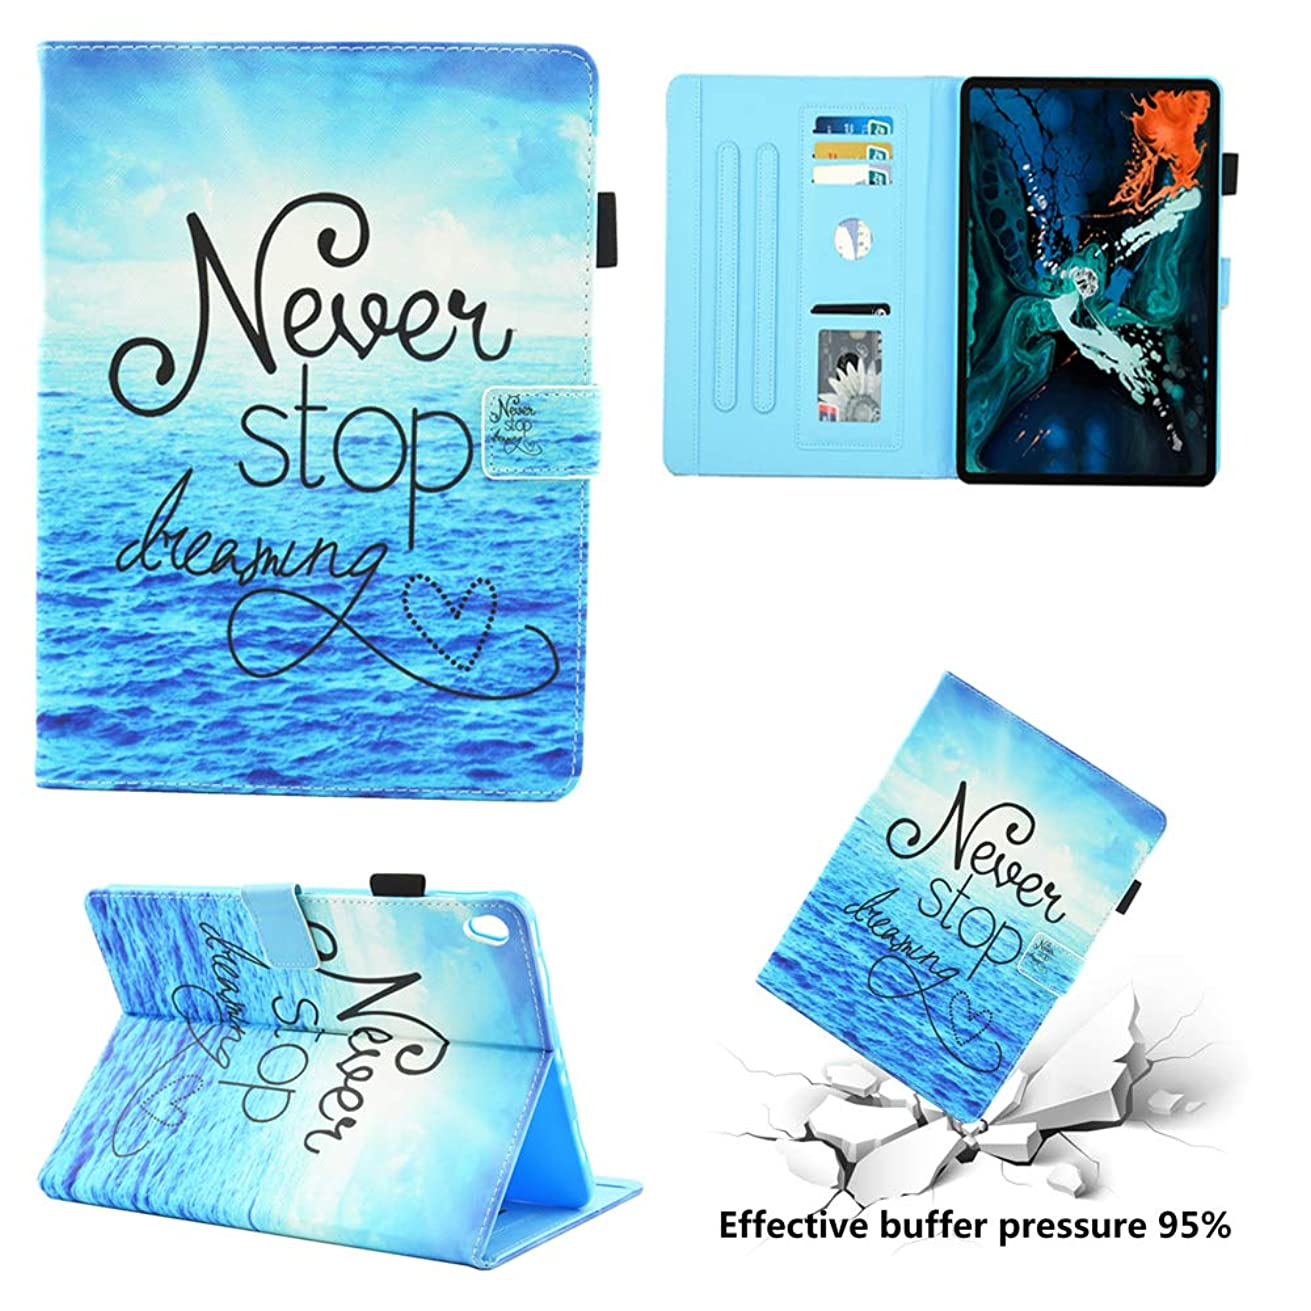 Greatlong Case for iPad Pro 11 Inch,4 Cards Slots Stand Case Auto Wake/Sleep Cover Slim Fit PU Leather Case for Apple iPad Pro 11 Case 2018,Never Give Up